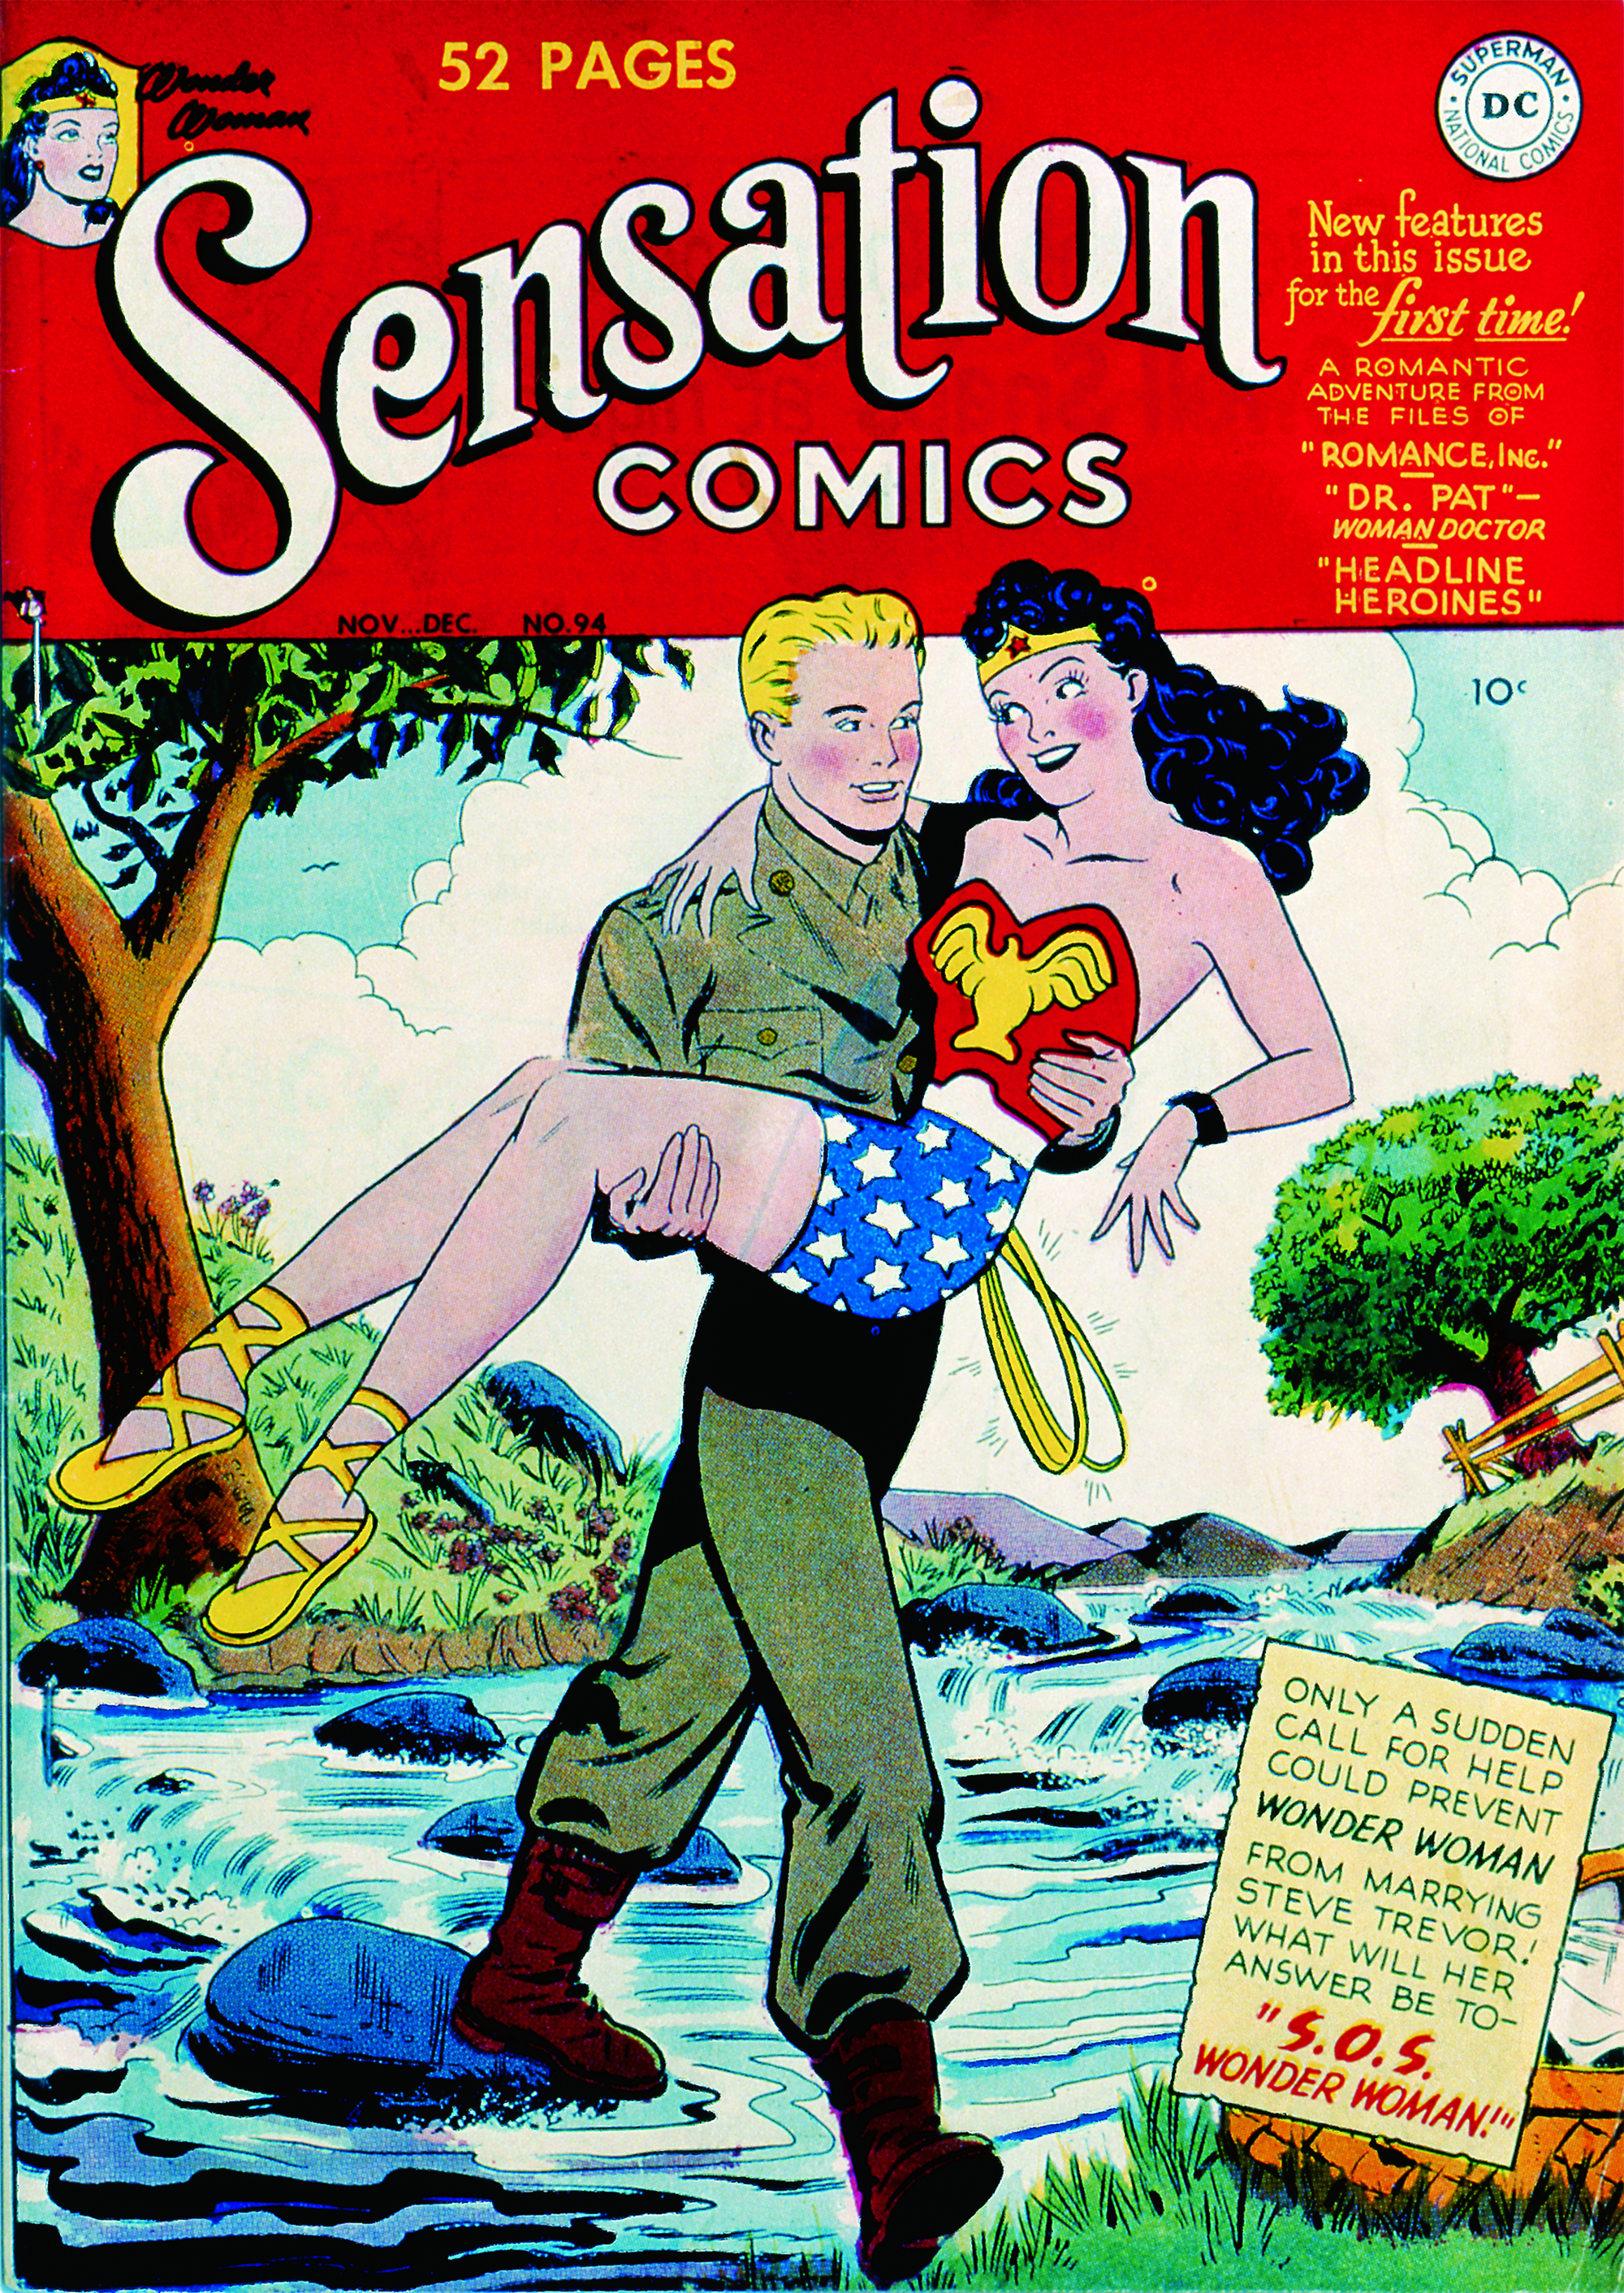 1949: After Marston's death, DC strips Wonder Woman of her powers, making her a model and a babysitter. Women's-history sidebars in the comics are replaced with wedding advice.